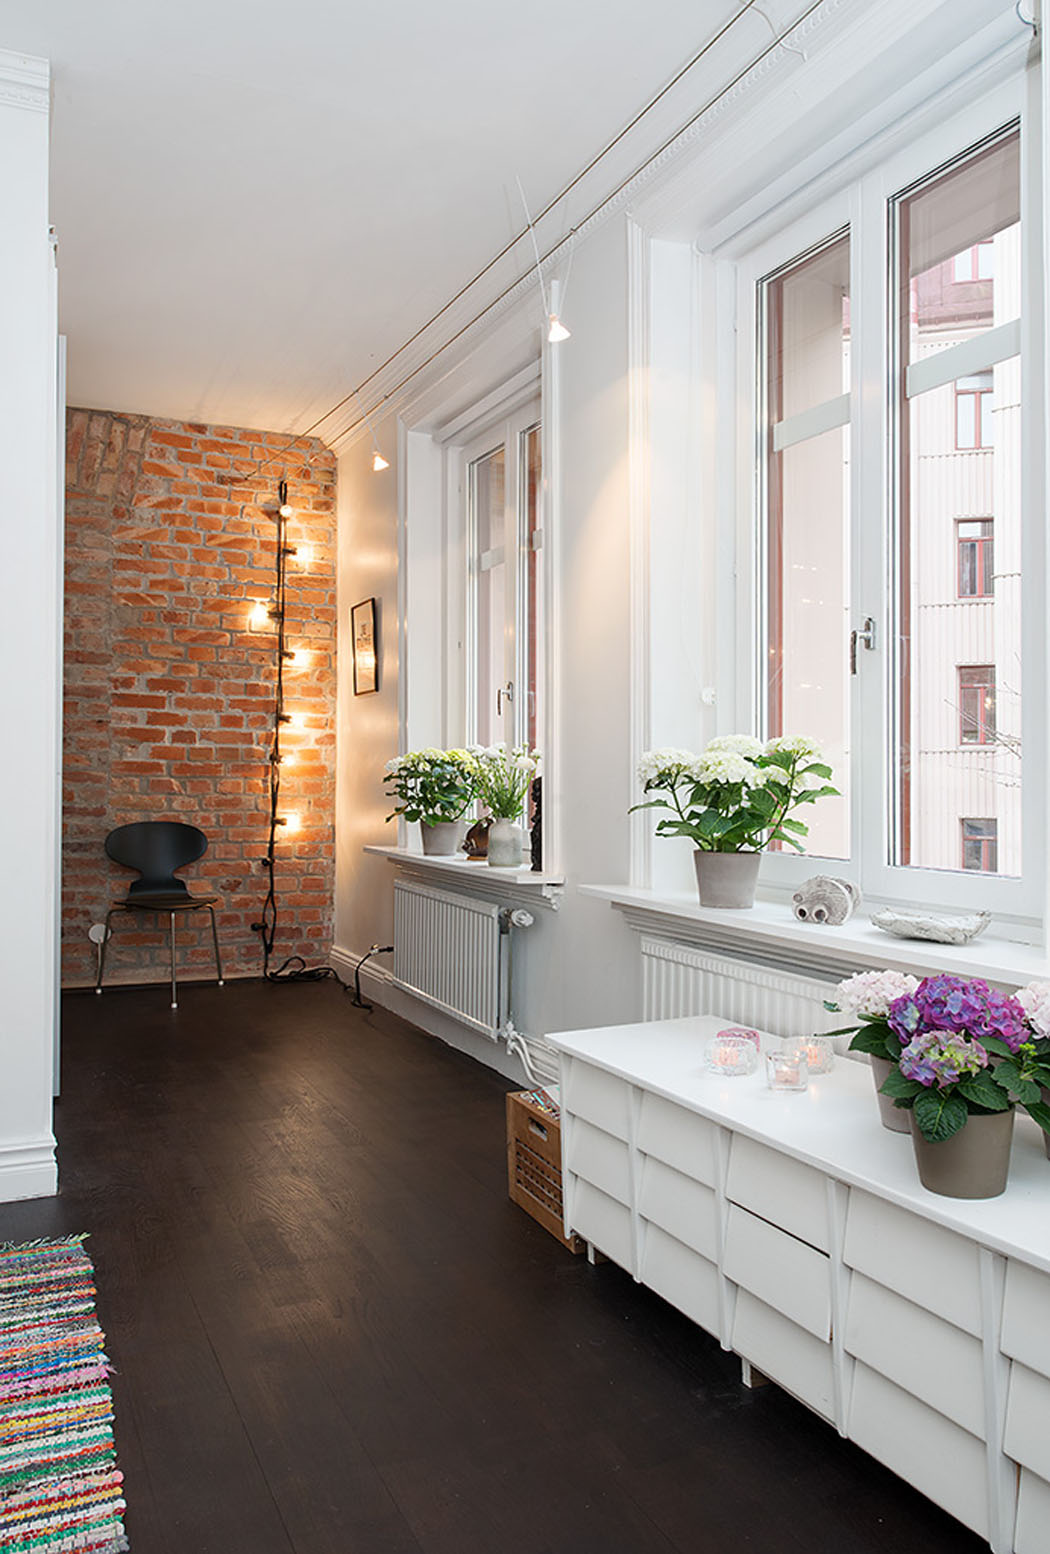 Bel appartement duplex g teborg l agencement atypique et design scandinave vivons maison - Entree decoratie interieur ...